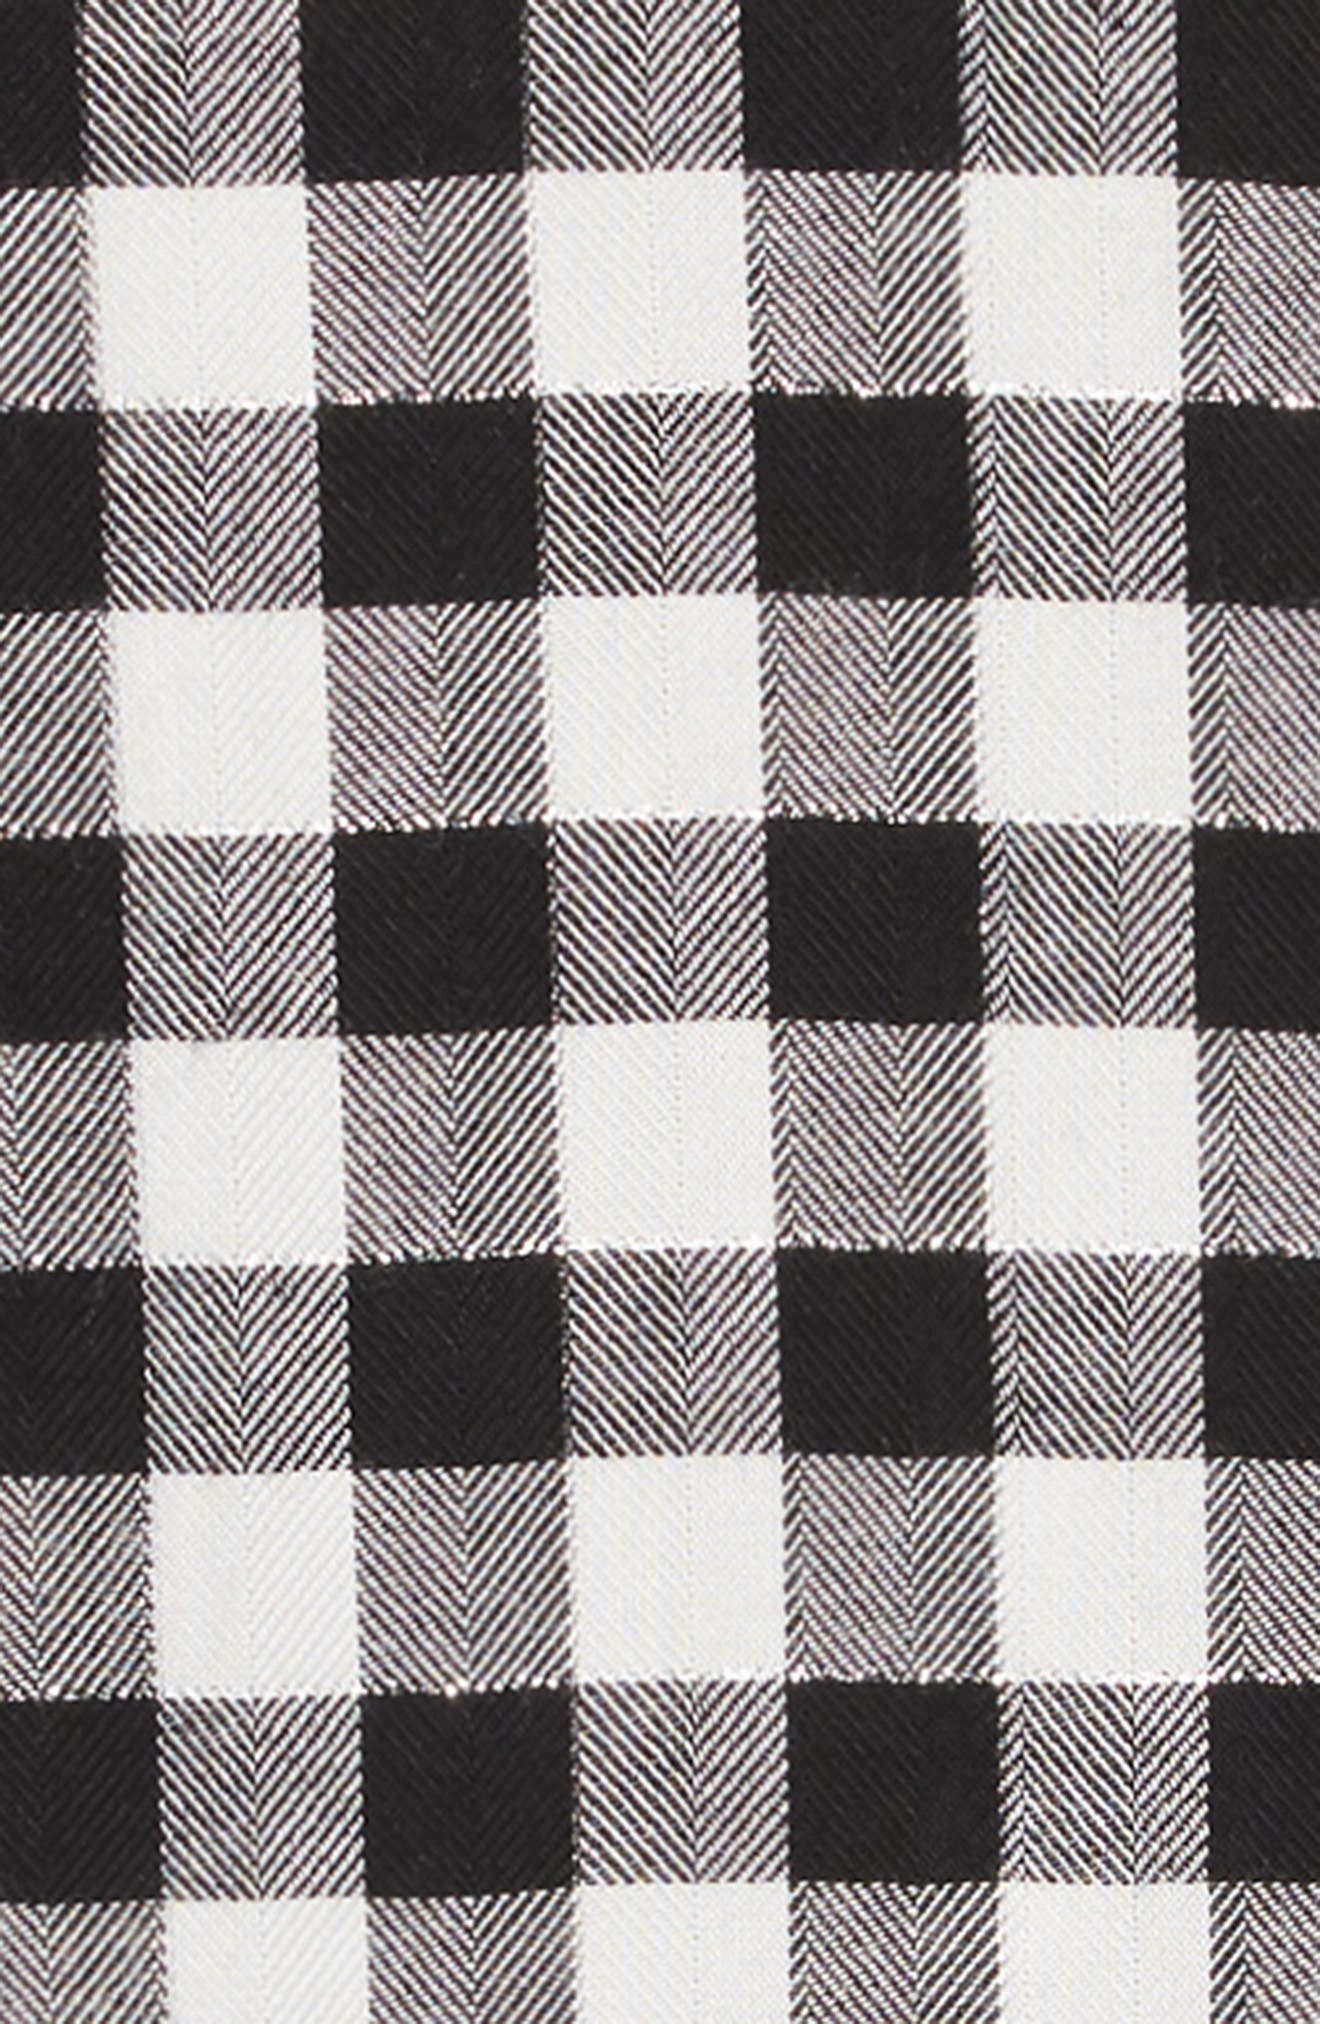 Plaid Ruffle Dress,                             Alternate thumbnail 3, color,                             BLACK- WHITE CHECK